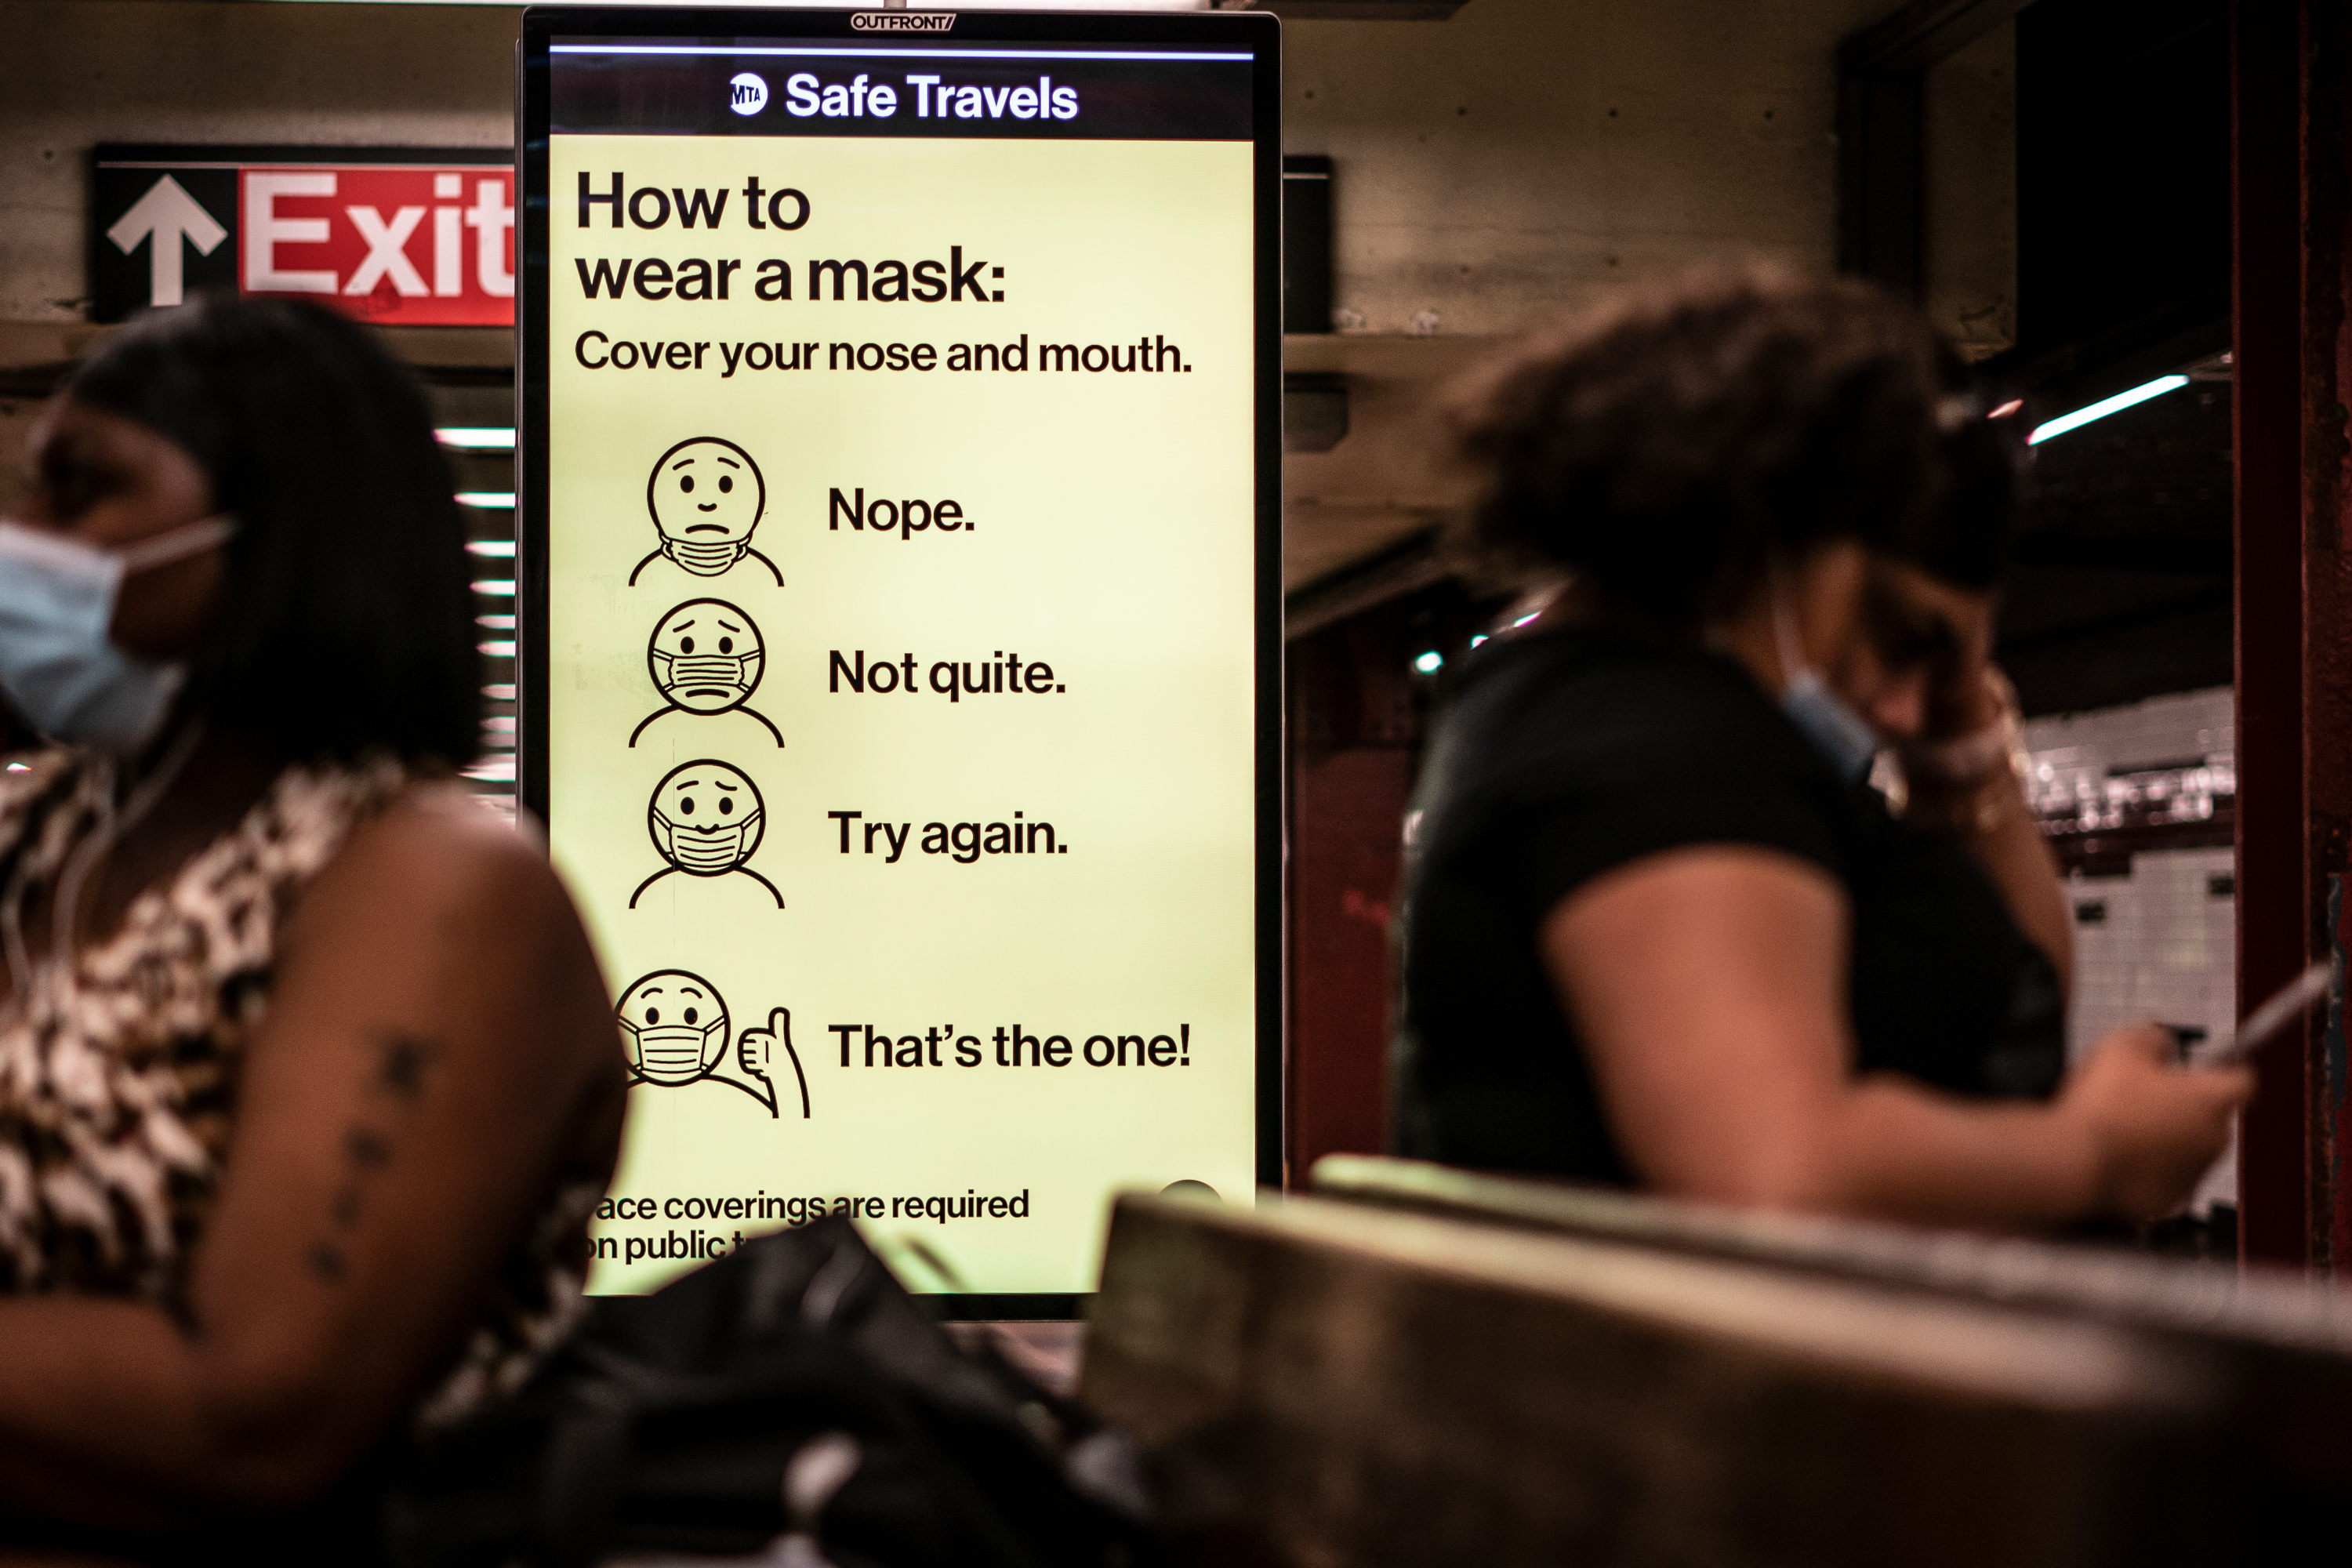 Cheeky signage in the subways, here at the Utica Ave. station, illustrates how to properly cover your mouth and nose.